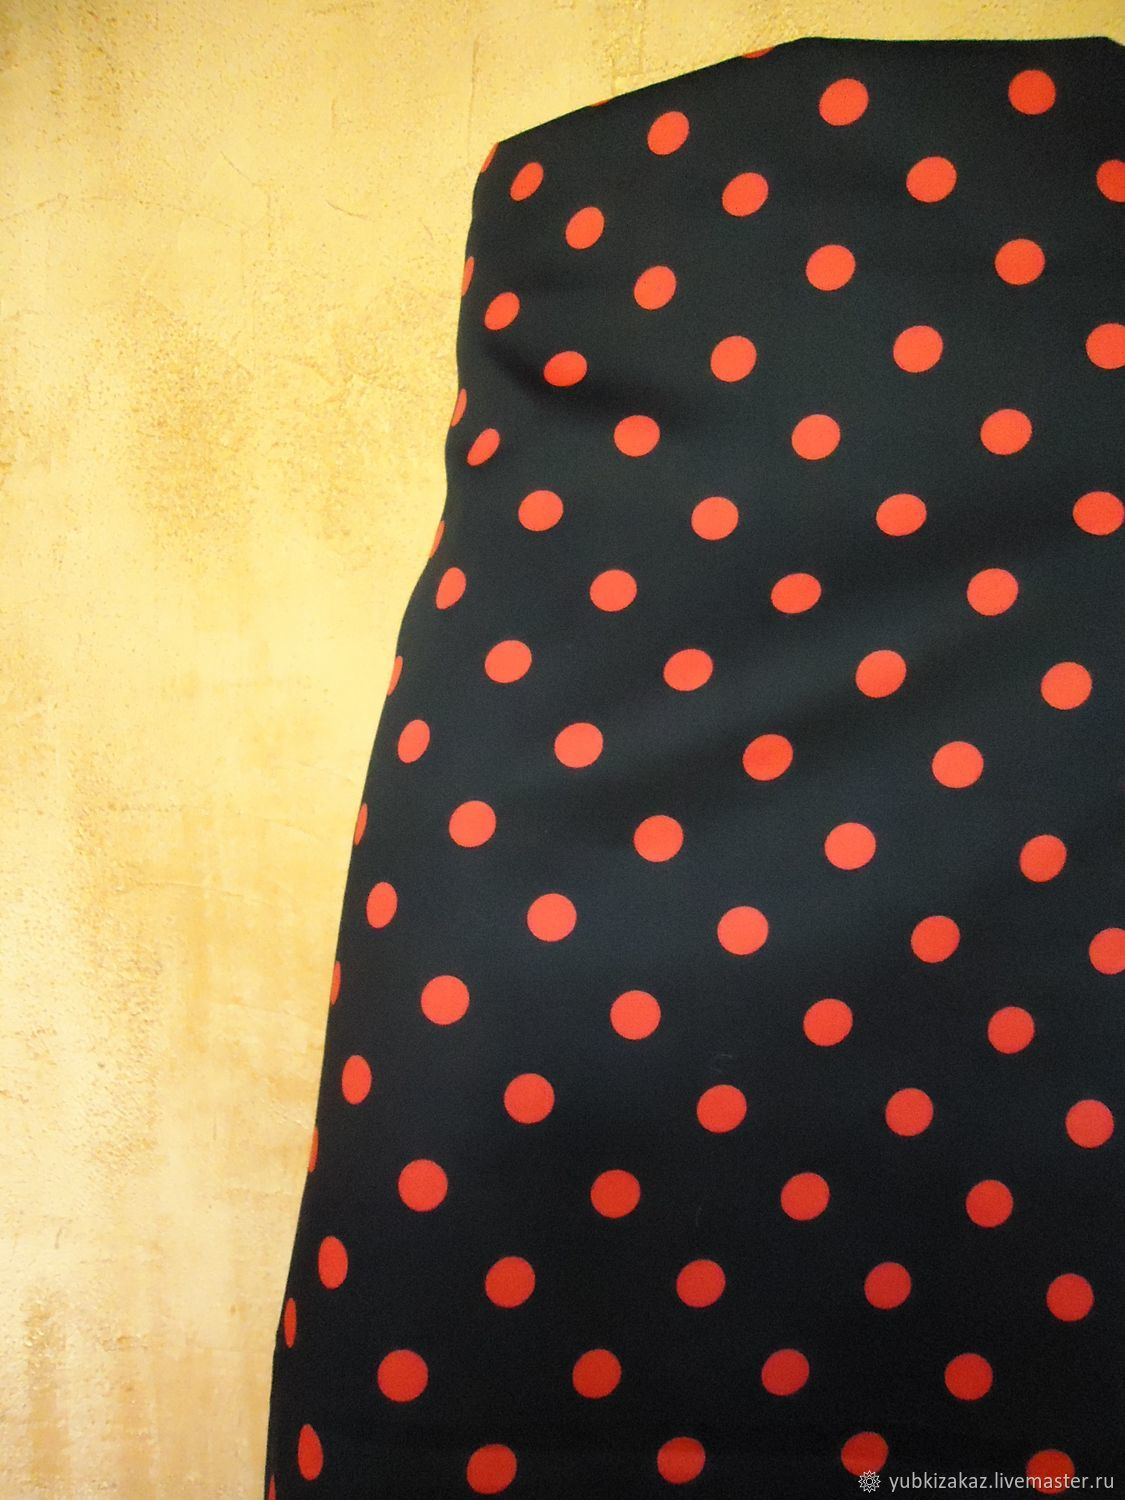 Polka dot skirt red on black made of cotton with elastane, Skirts, Novosibirsk,  Фото №1